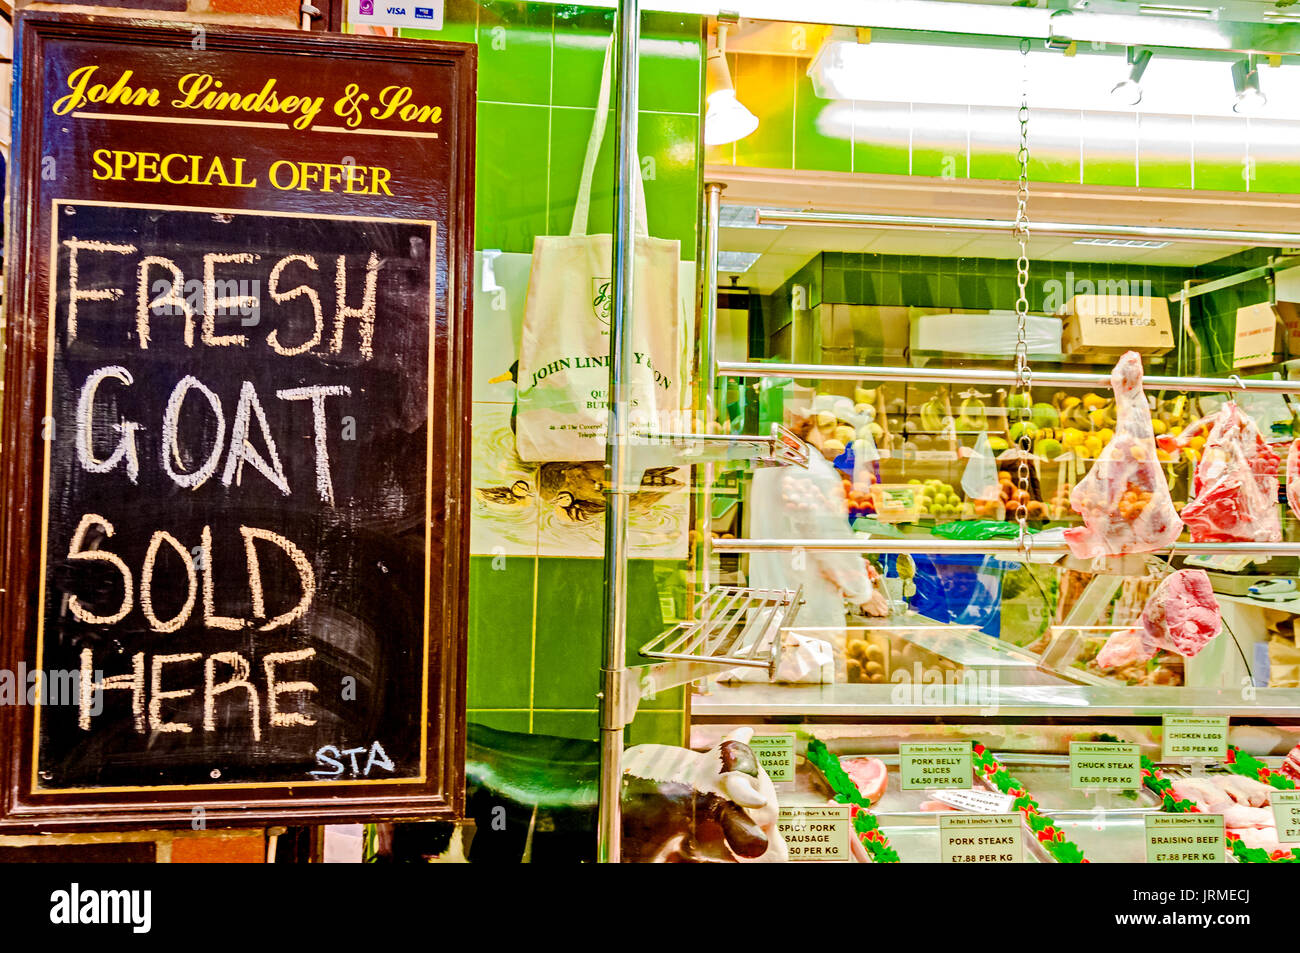 Food on Display at a market stall, Covered market, Oxford; Auslage eines Marktstandes mit Fleisch in Oxford - Stock Image